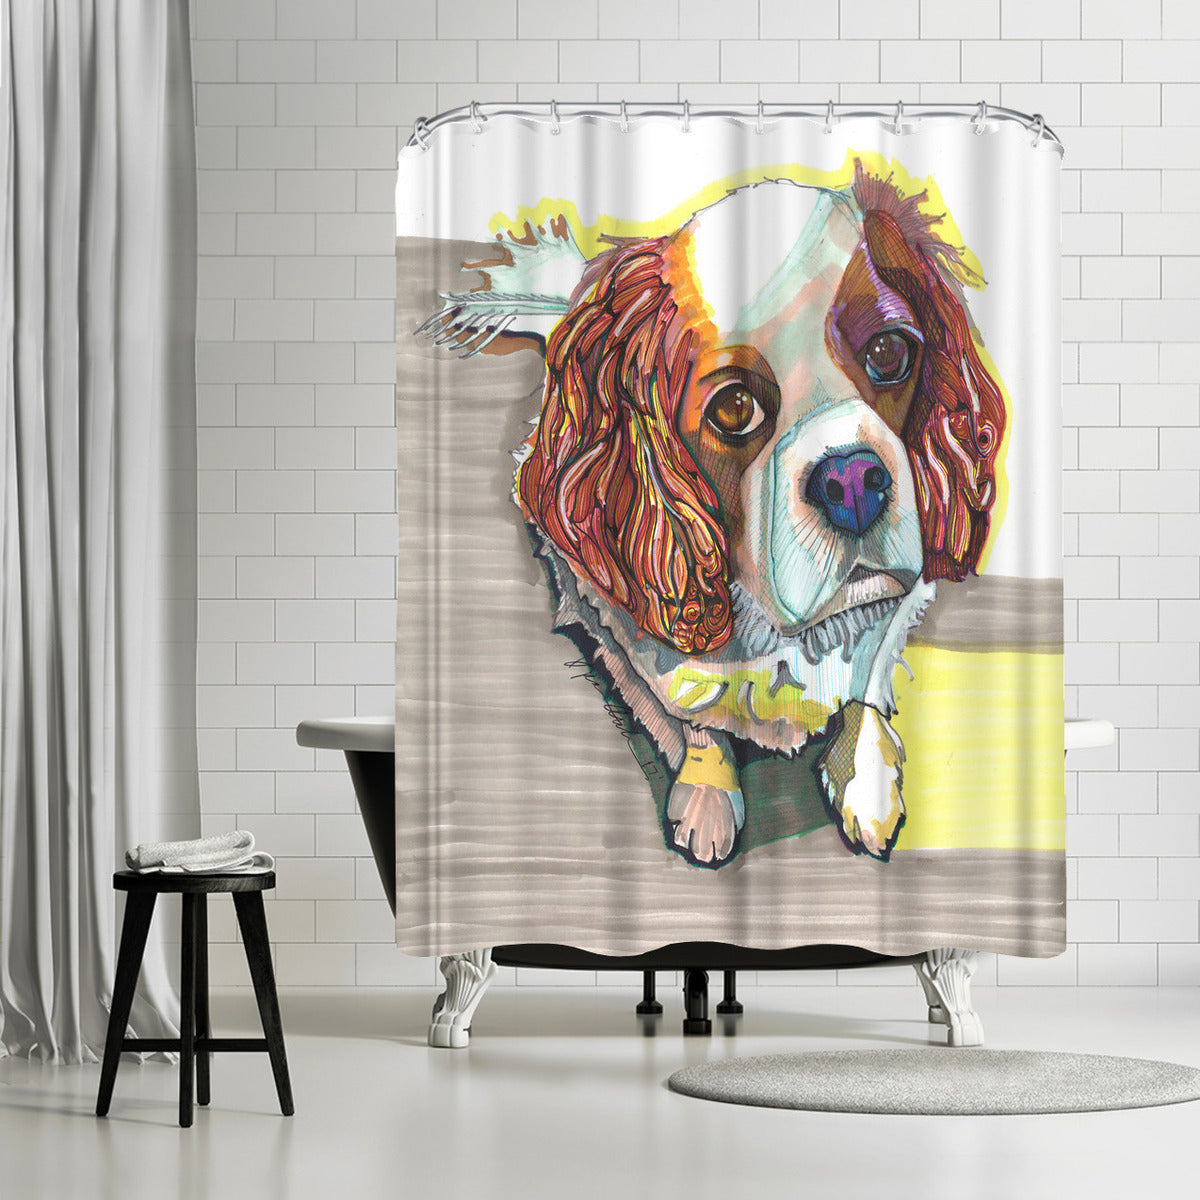 King Charles by Solveig Studio Shower Curtain